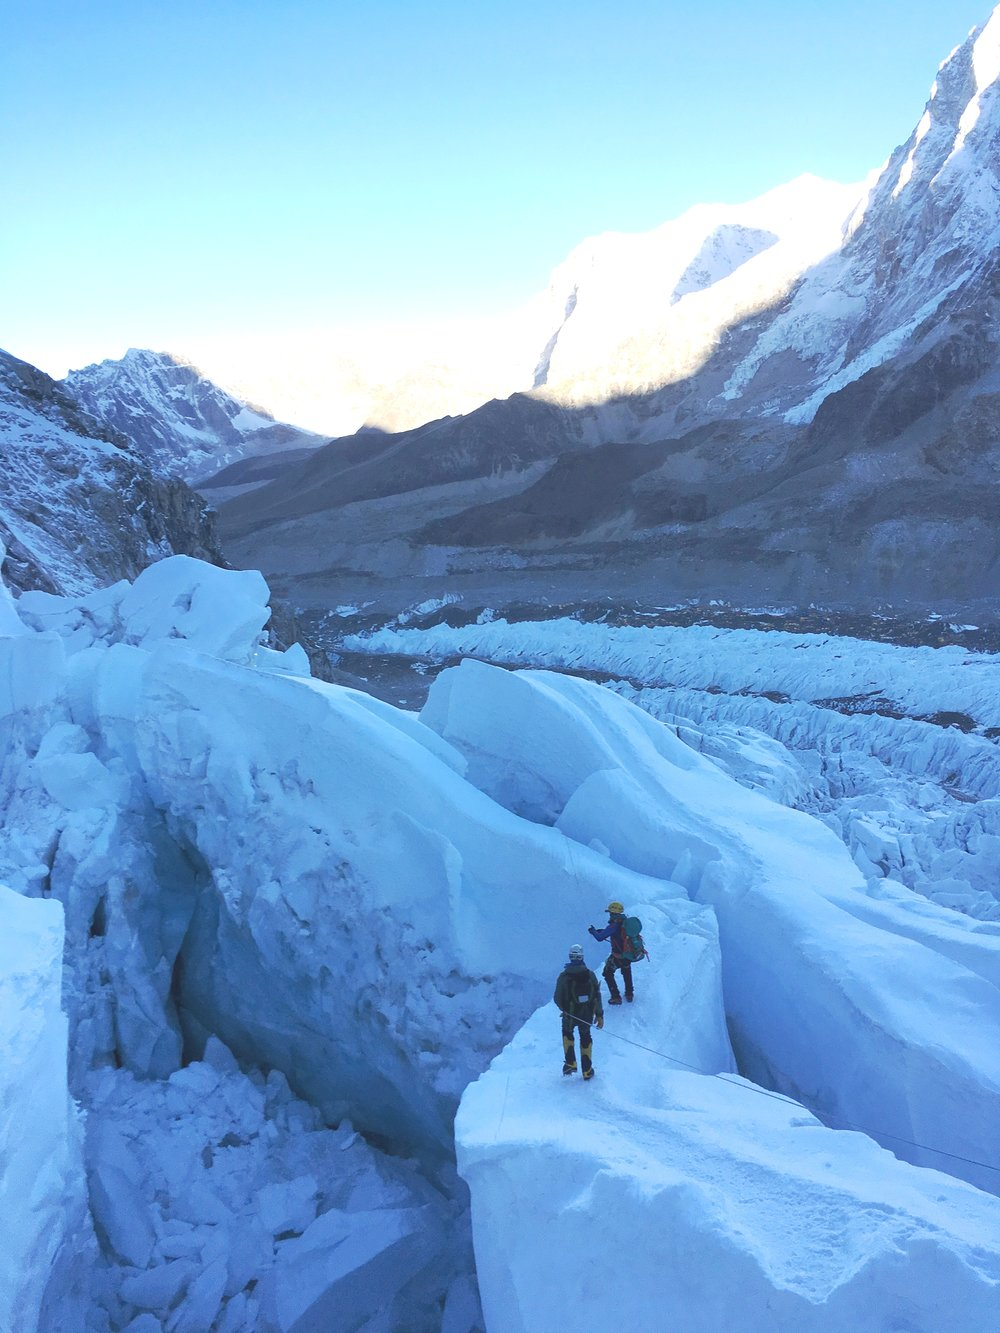 S-Shaped Ice Bridge in the Icefall